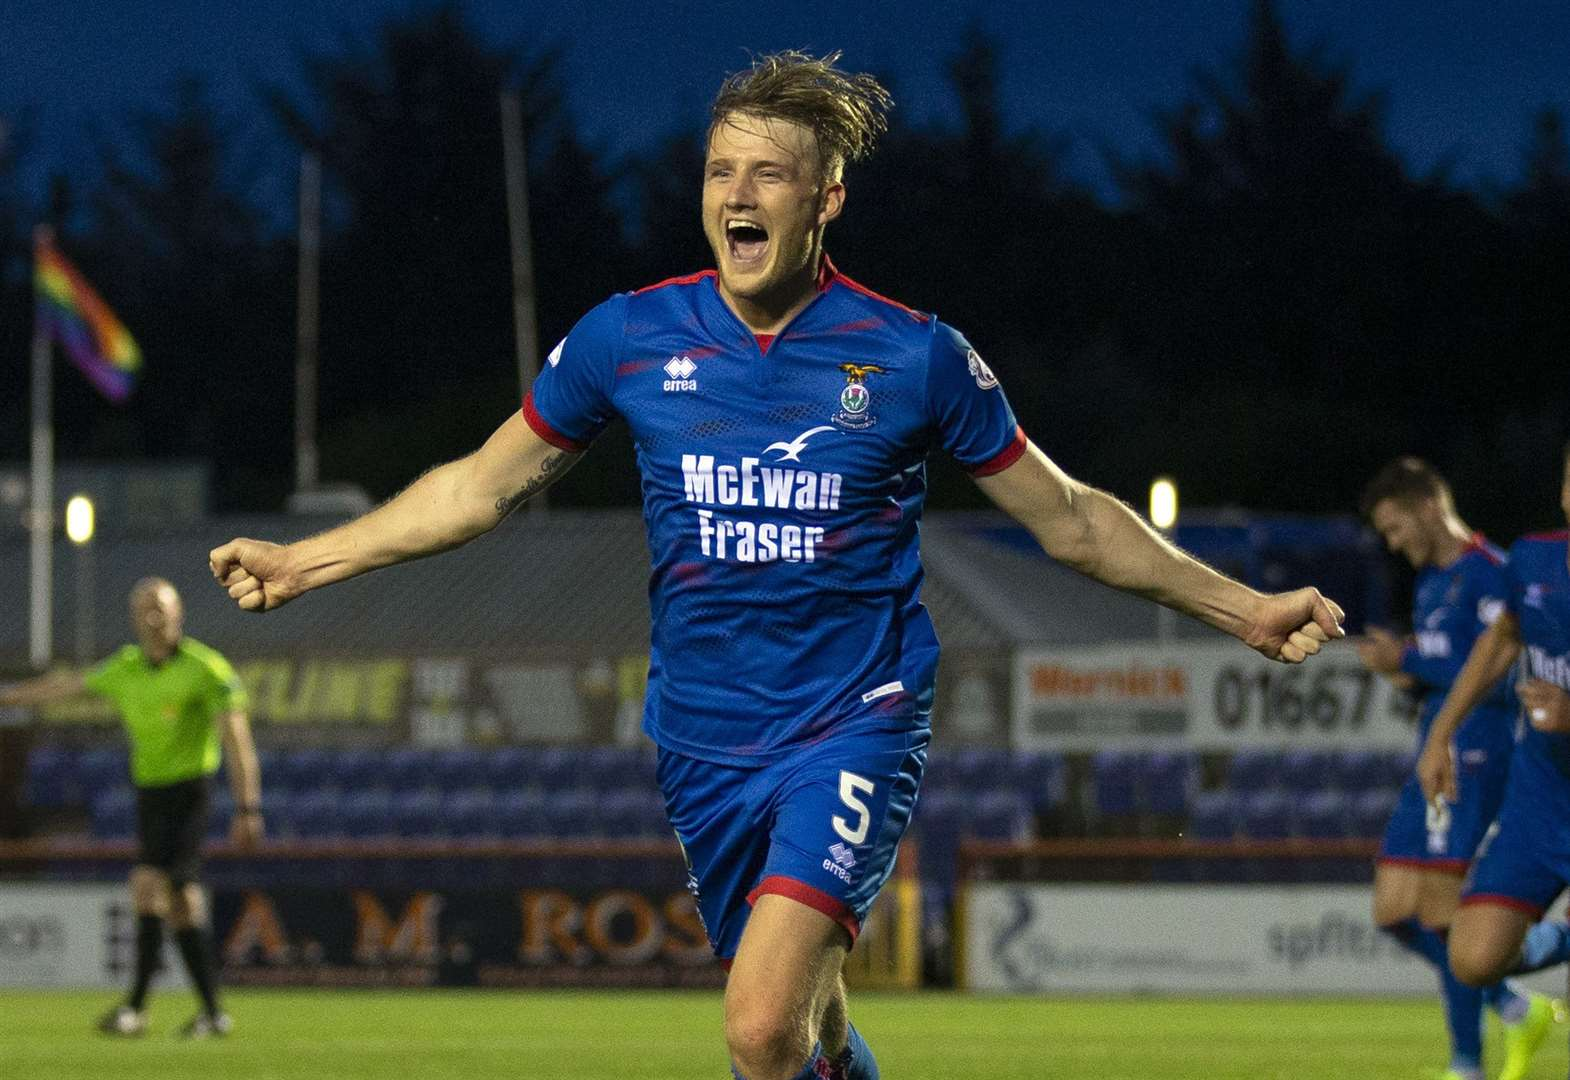 Inverness Caledonian Thistle says Donaldson deal to Ross County not done